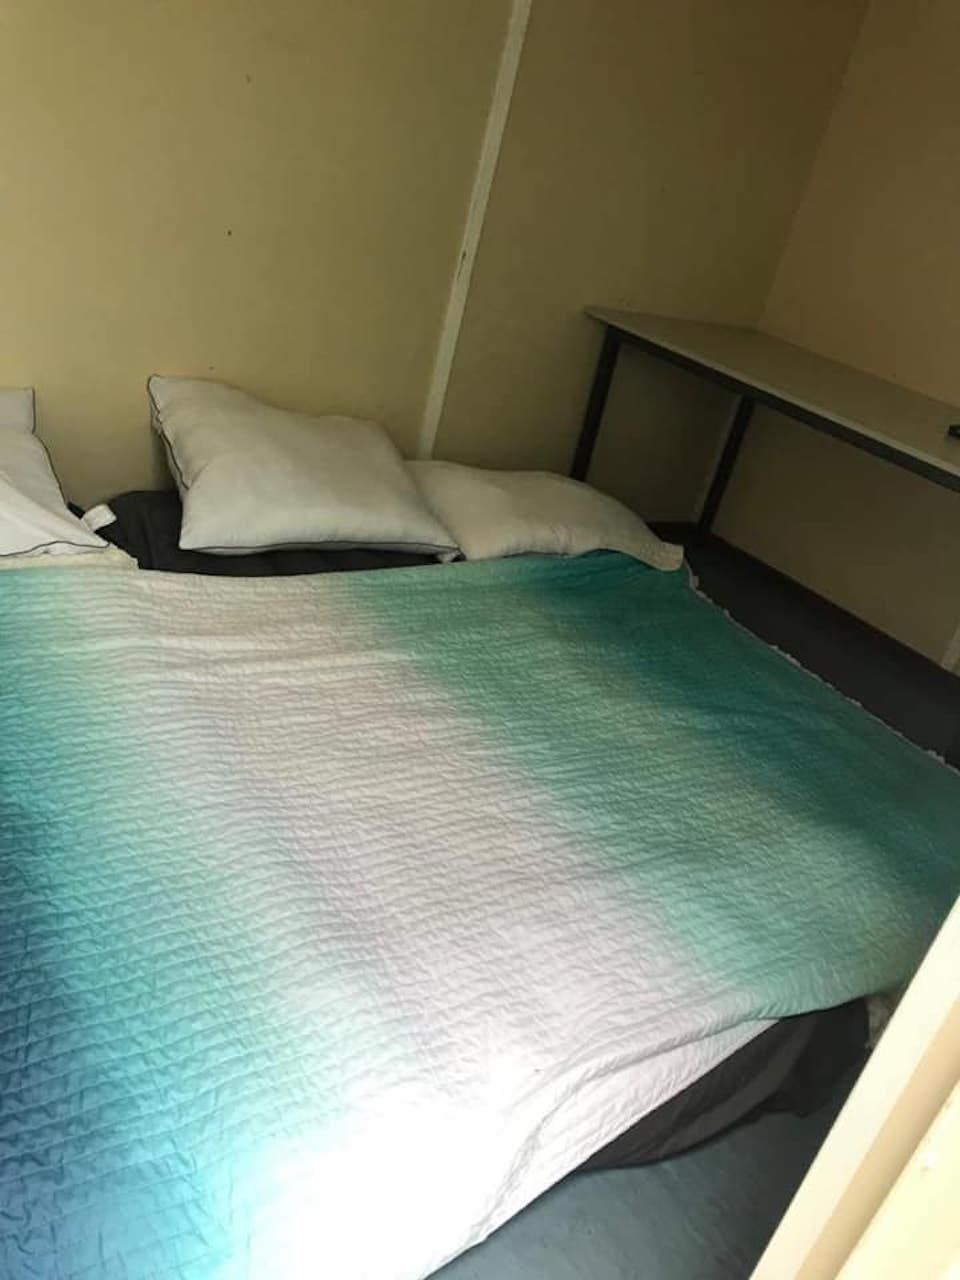 Airbnb scam, view of the makeshift bed